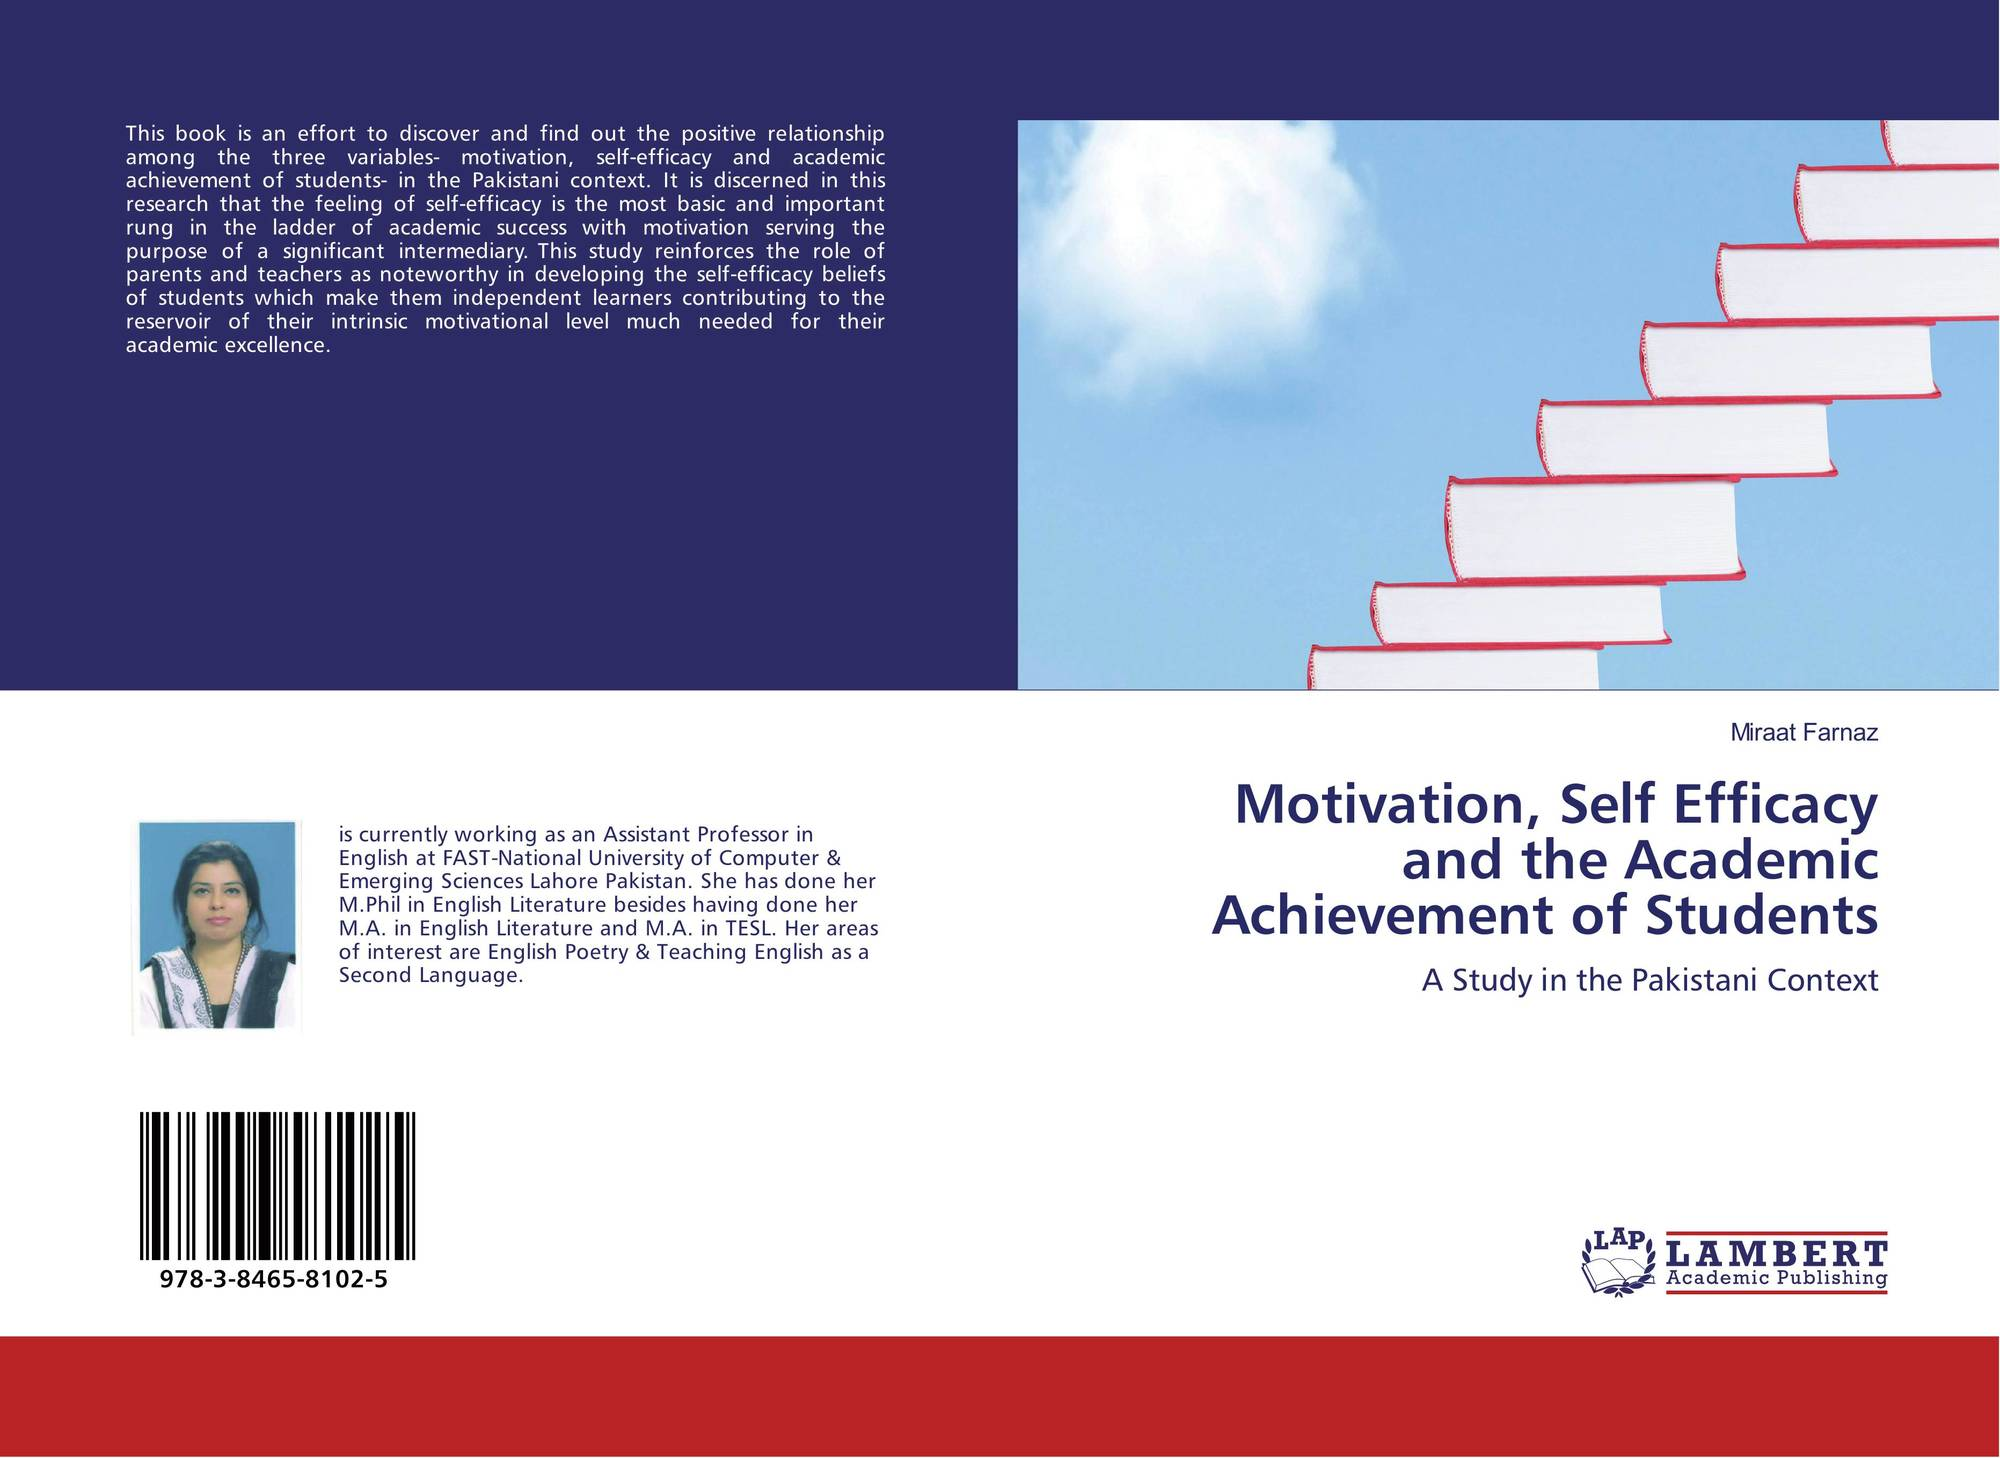 review of related literature on achievement motivation Get help on 【 review of related literature: extrinsic and intrinsic motivation in the attendance of students essay 】 on graduateway huge assortment of free essays.